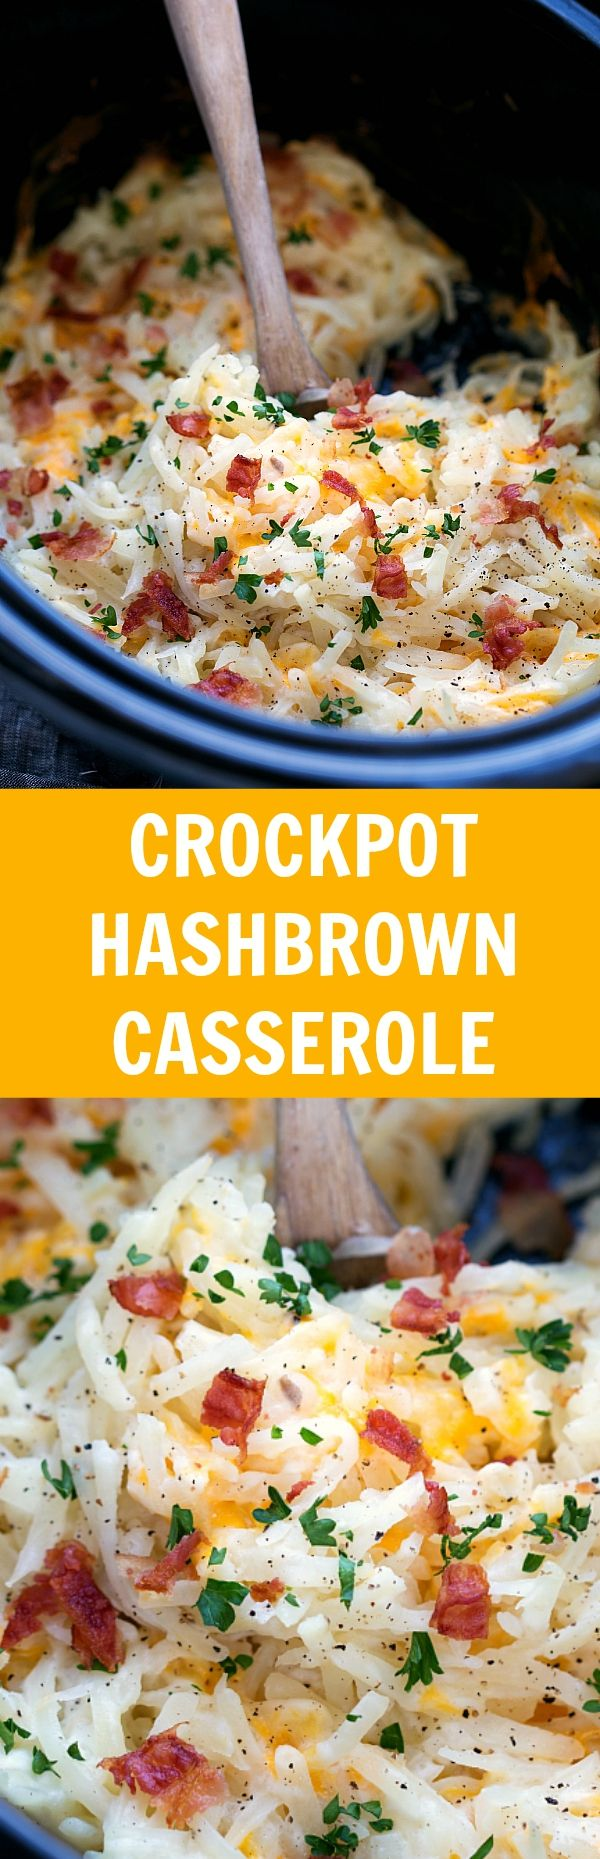 Crockpot Hashbrown Casserole (NO cream of soups)